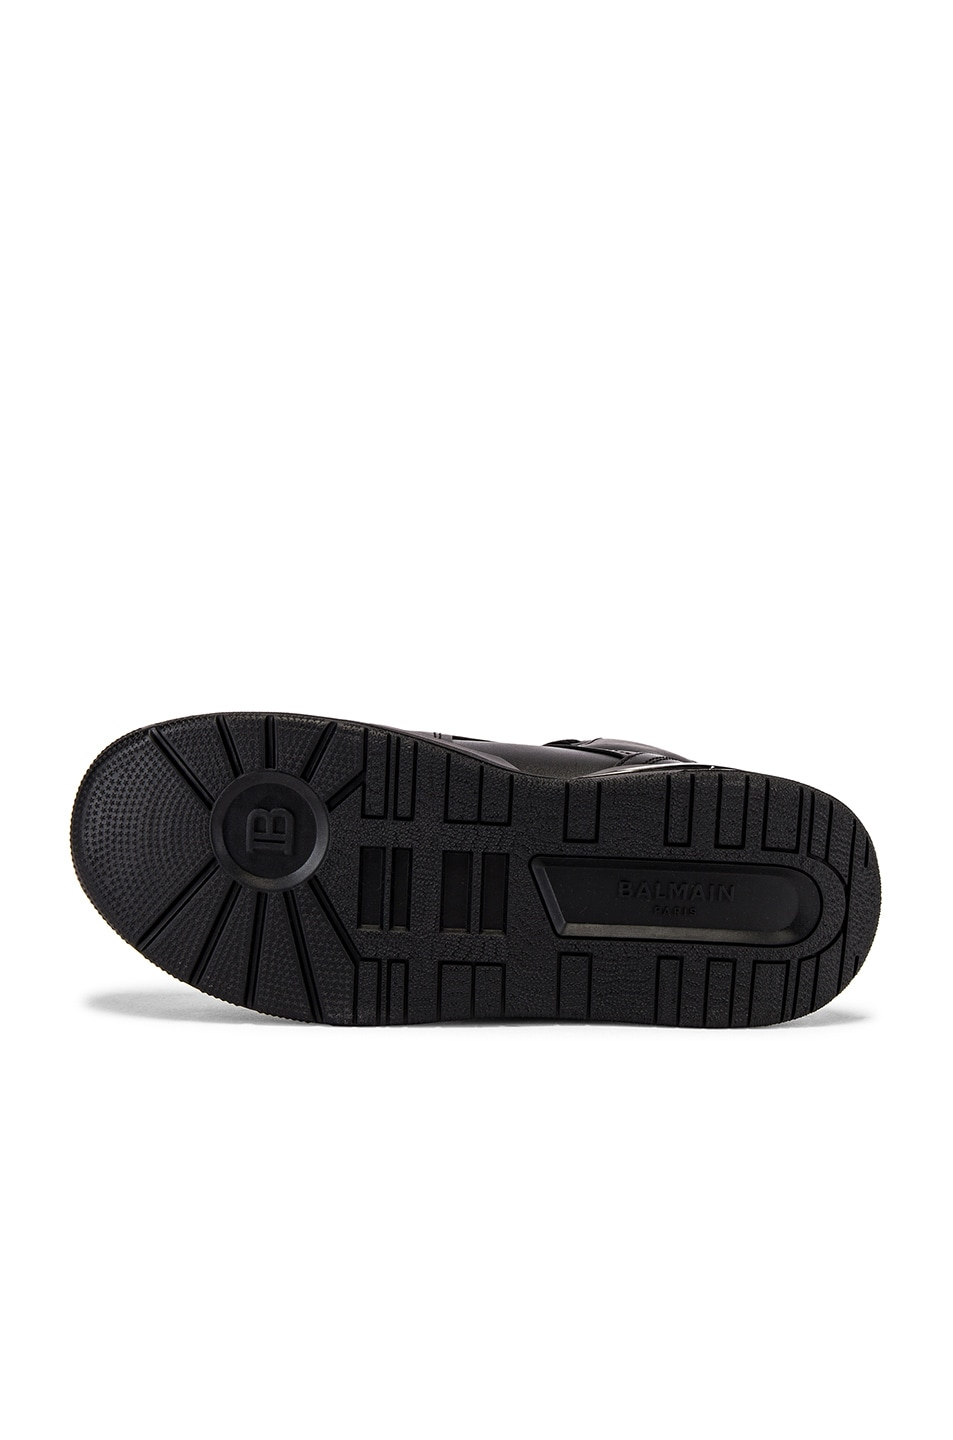 Image 6 of BALMAIN B-Ball Leather Sneaker in Noir & Noir